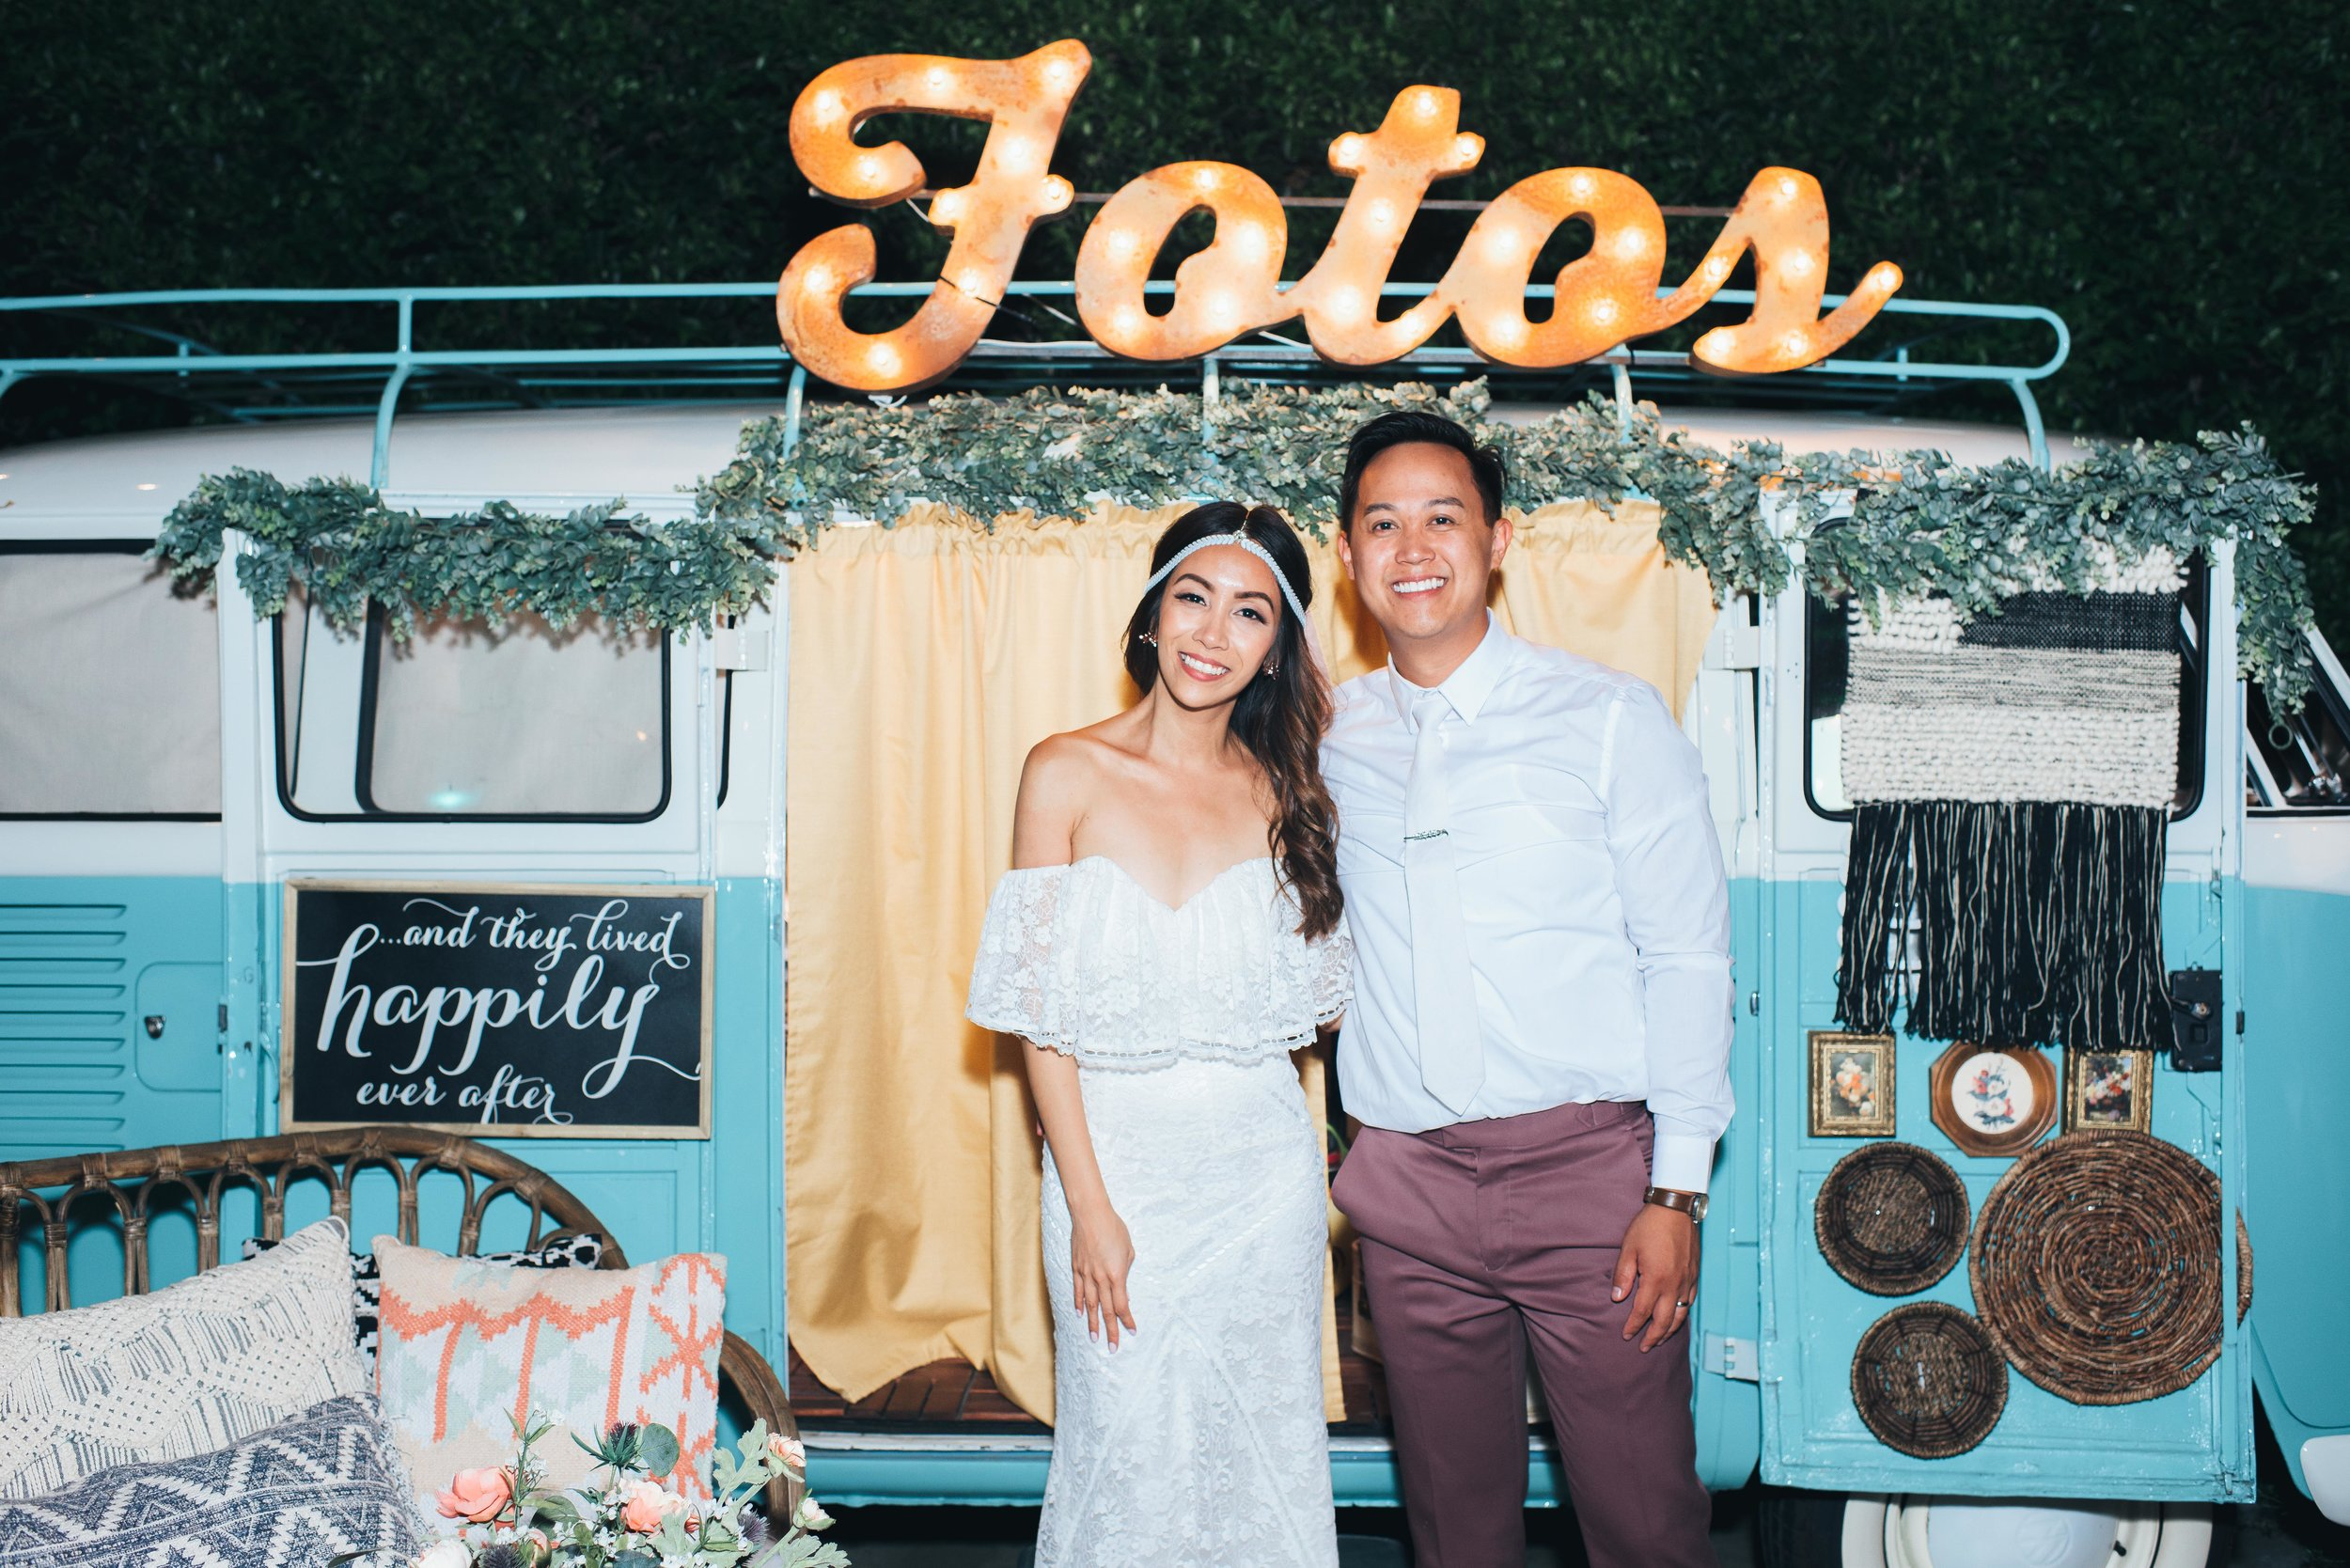 Ruby Street Wedding Photographer, Elopement Photographer, Engagement Photographer, Los Angeles Wedding Photographer, Palm Springs Wedding Photographer, Joshua Tree Wedding Photographer